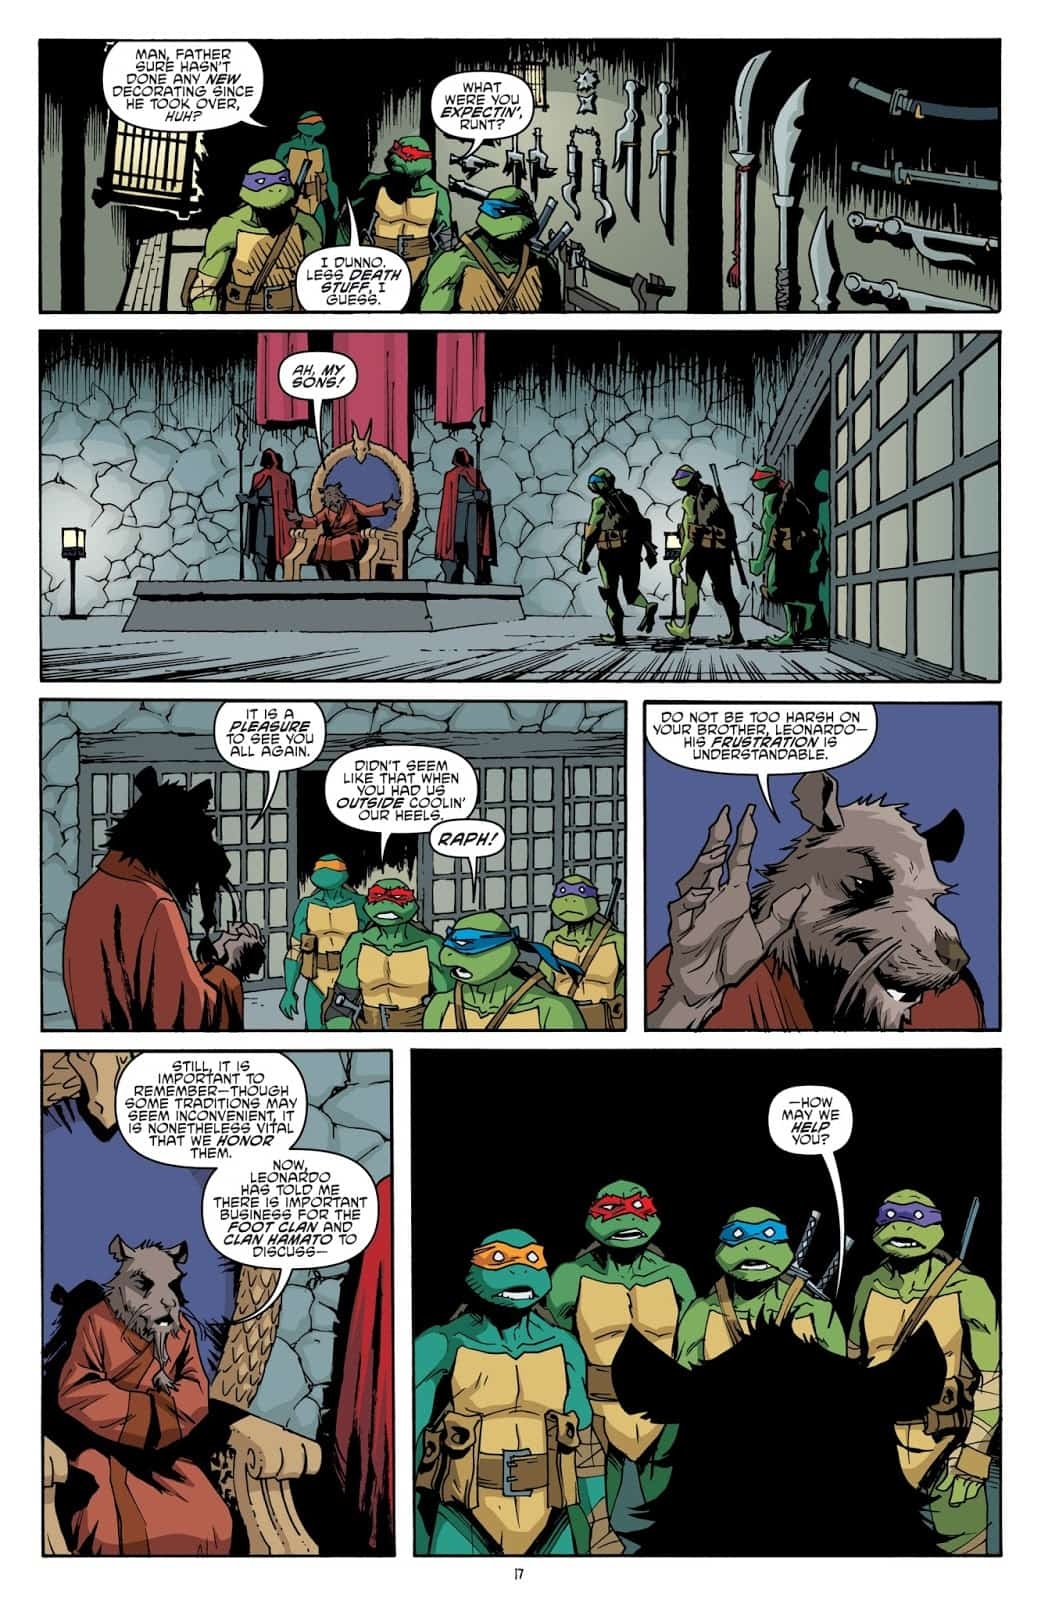 REVIEW: TMNT #78 (My Dad Punched a Dinosaur!) - Comic Watch